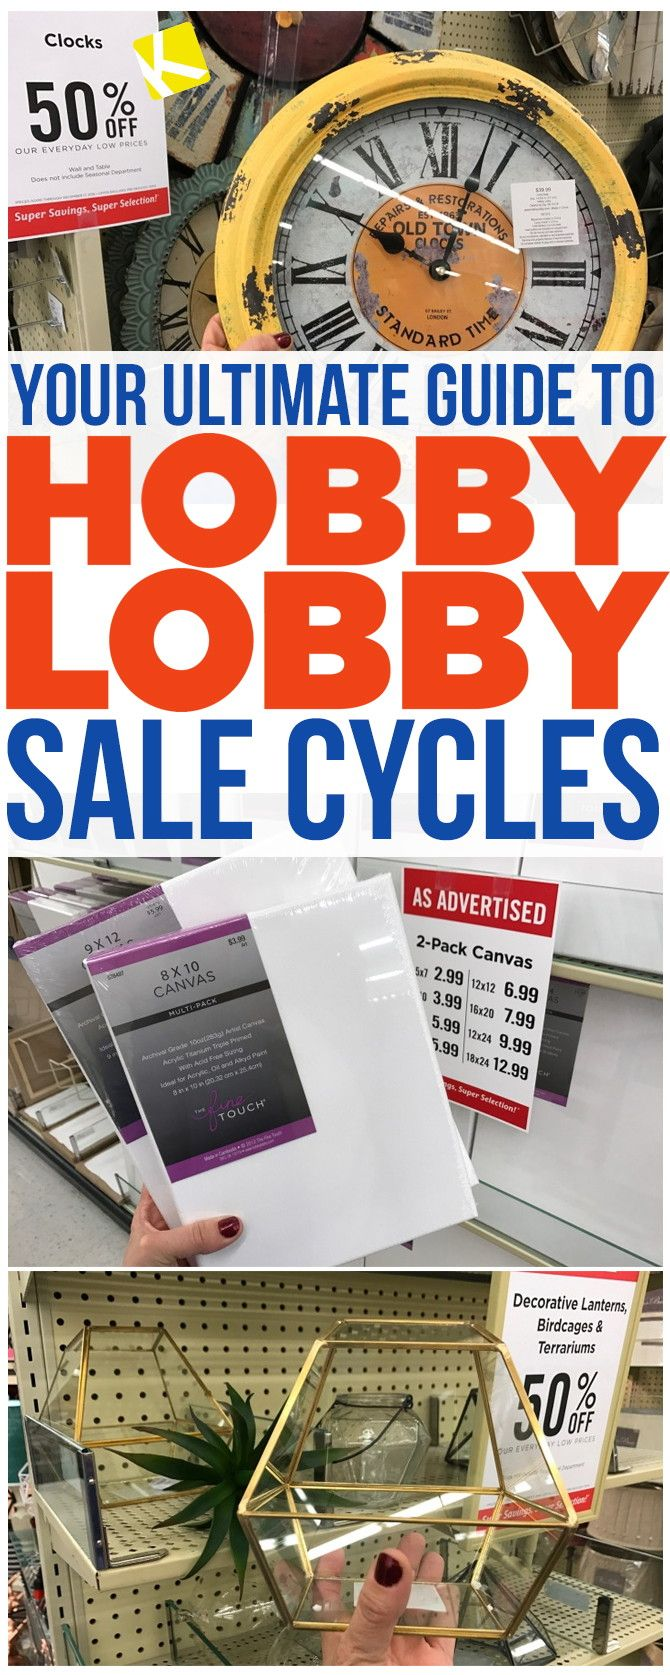 How to Know When Every Item at Hobby Lobby Goes on Sale | Lobbies ...